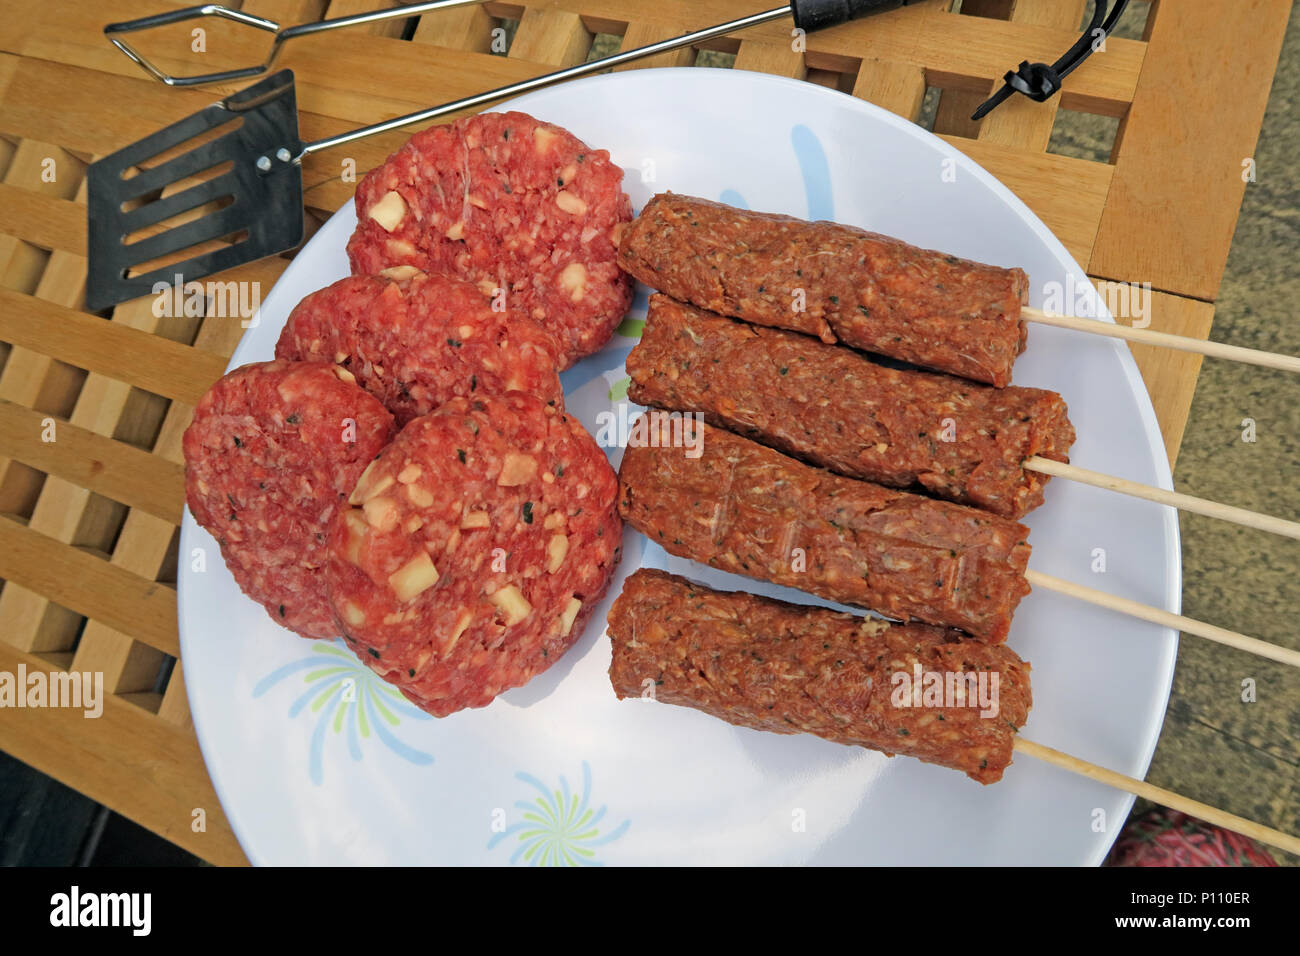 Dangers of food poisoning from summer BBQ meat, Sausages, beef burgers, Kebabs, under-cooked or raw - Stock Image